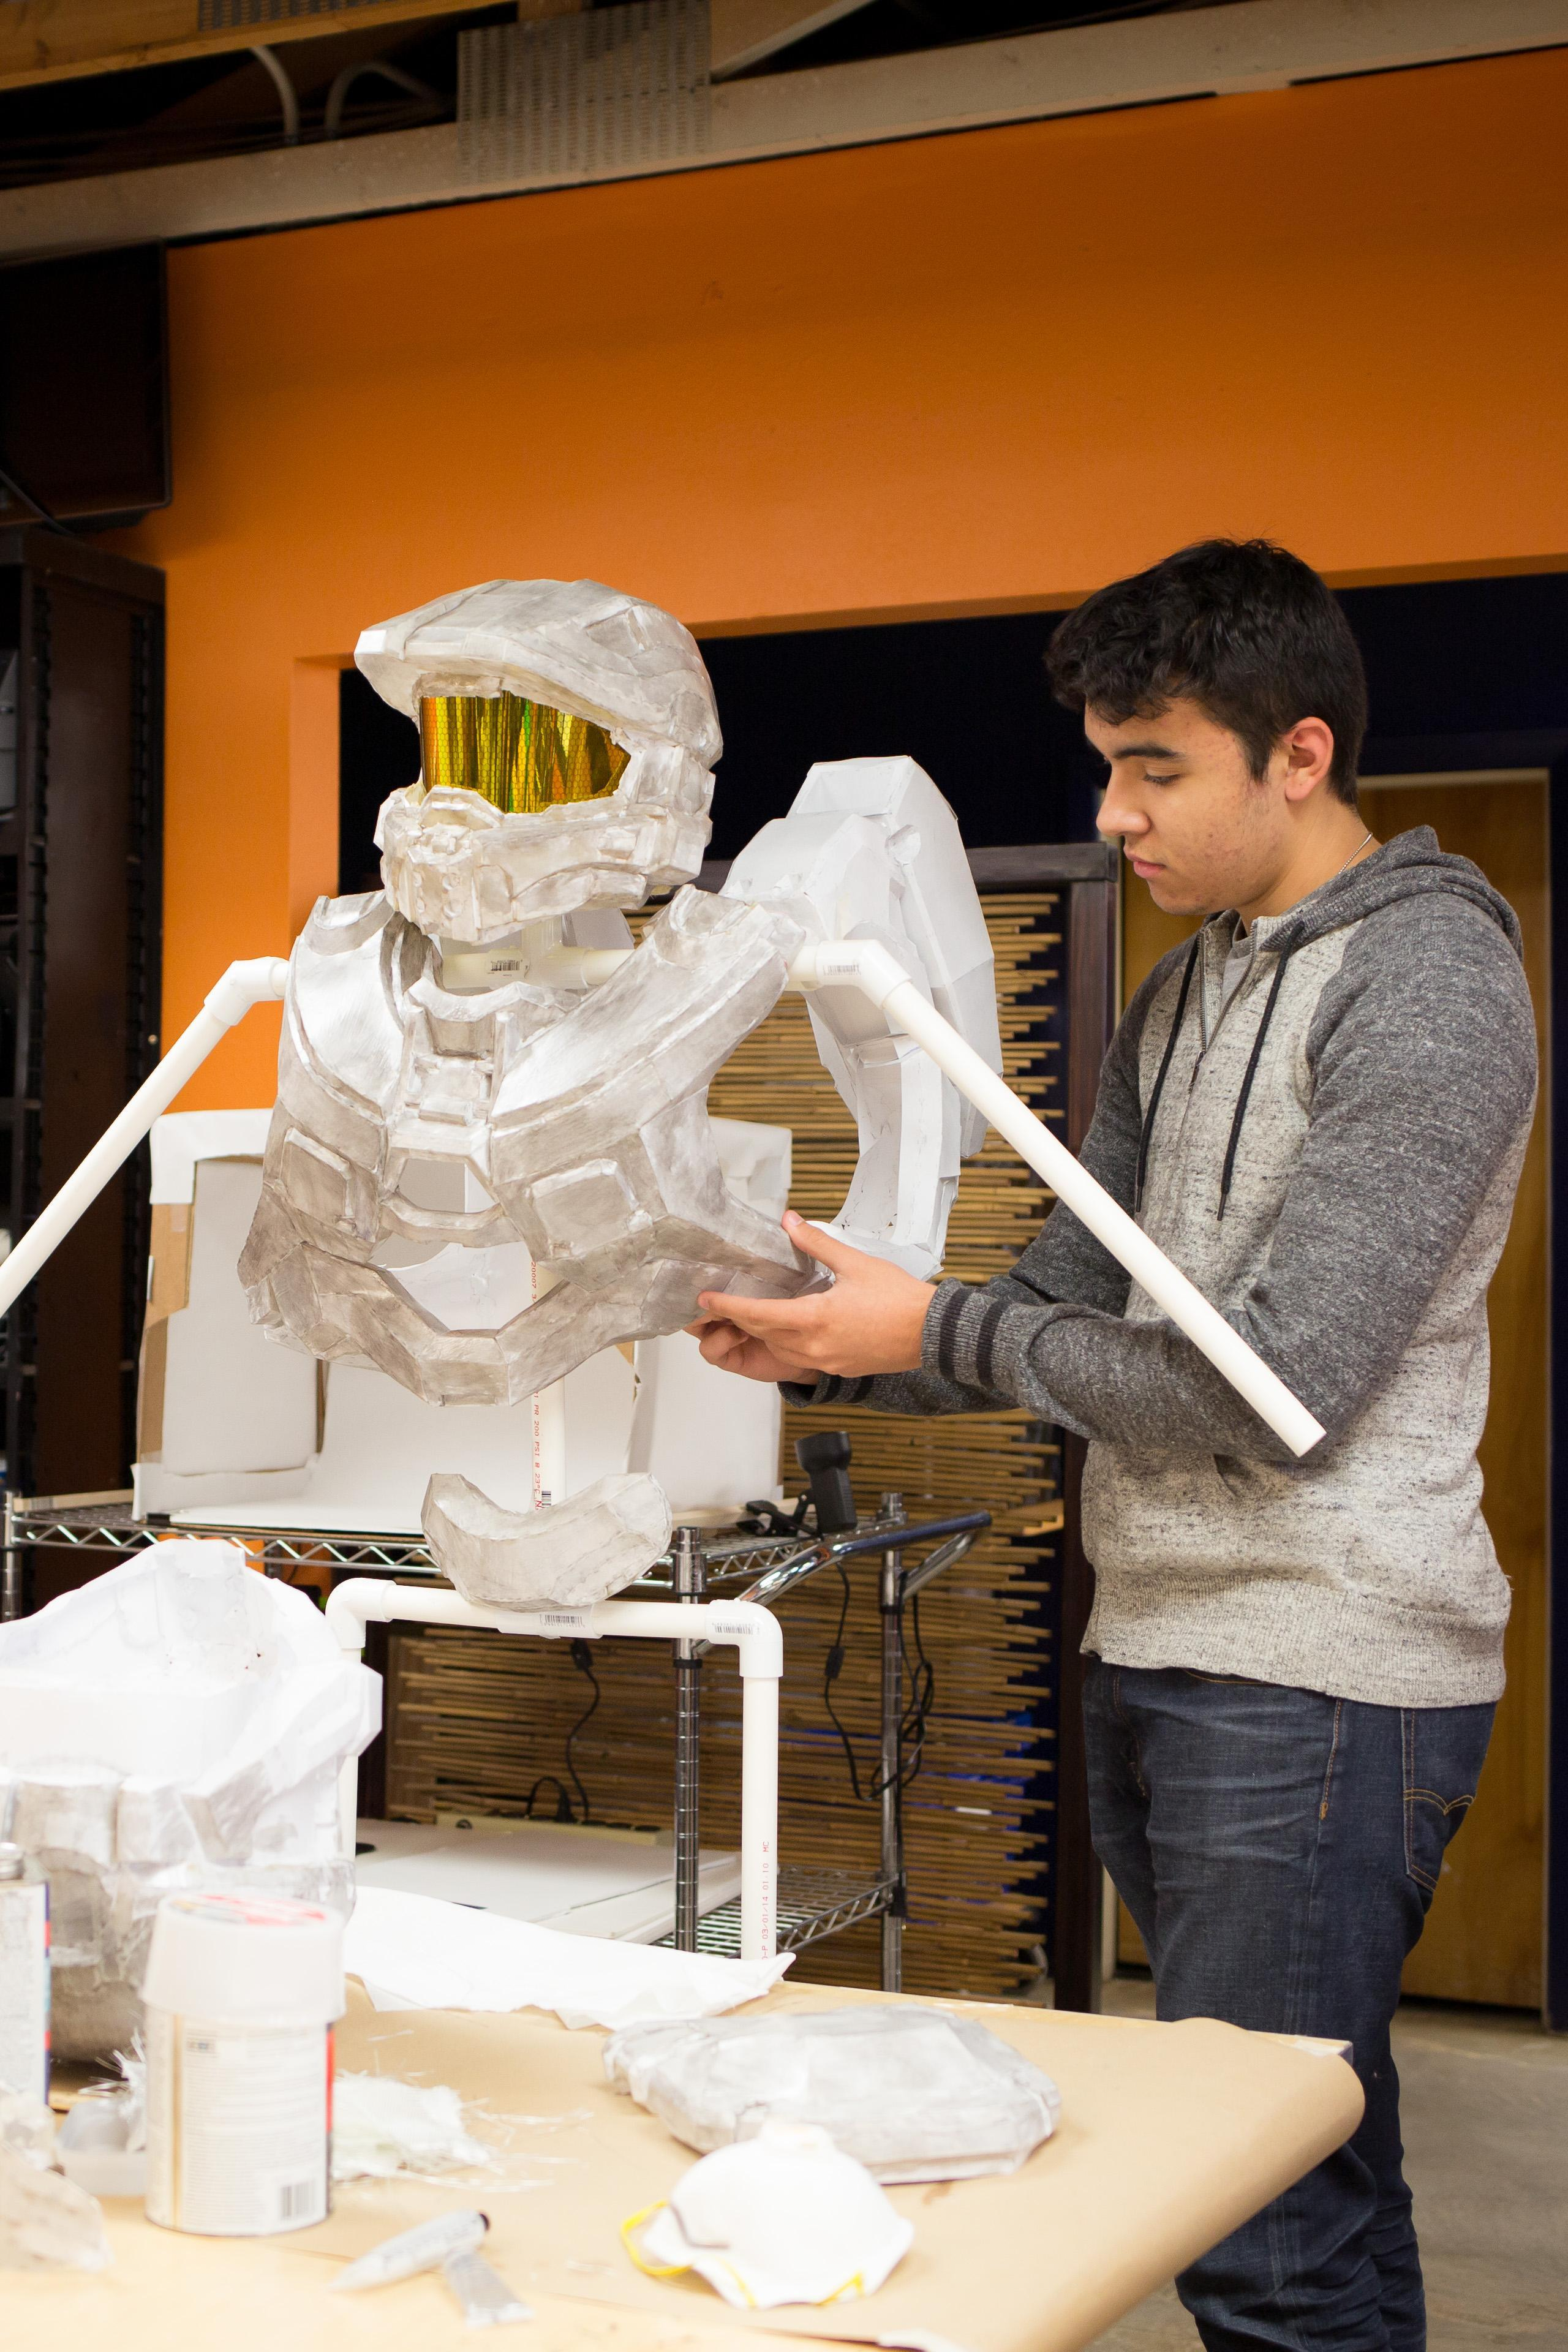 Upper School student makes Halo suit using special materials in the makerspace